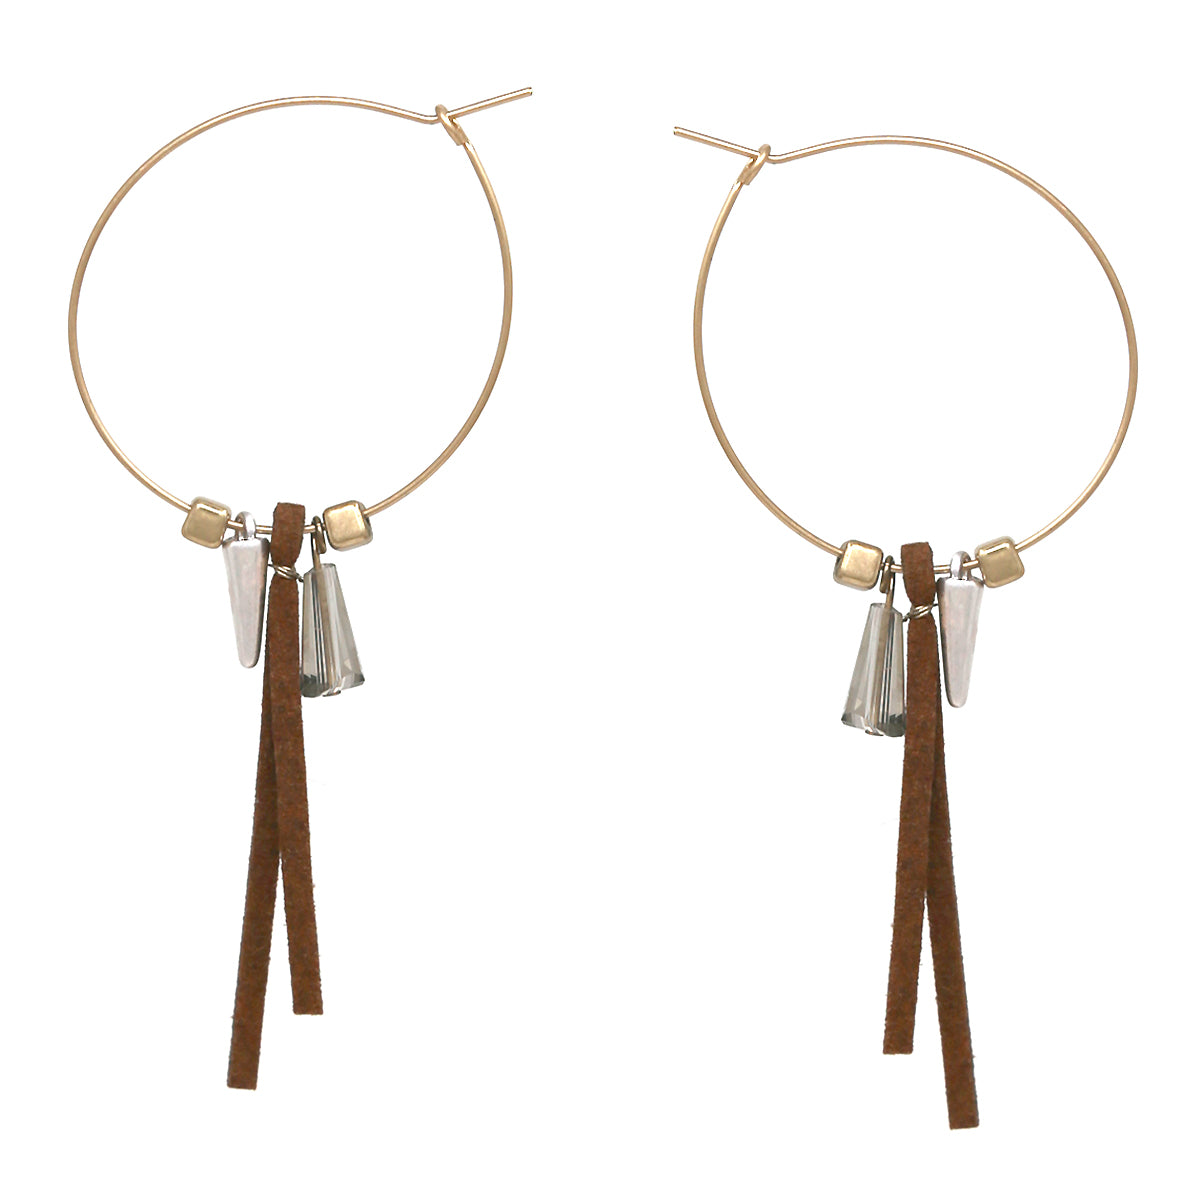 Faux Leather/ Glass/ Metal Charm Hoop Drop Earrings